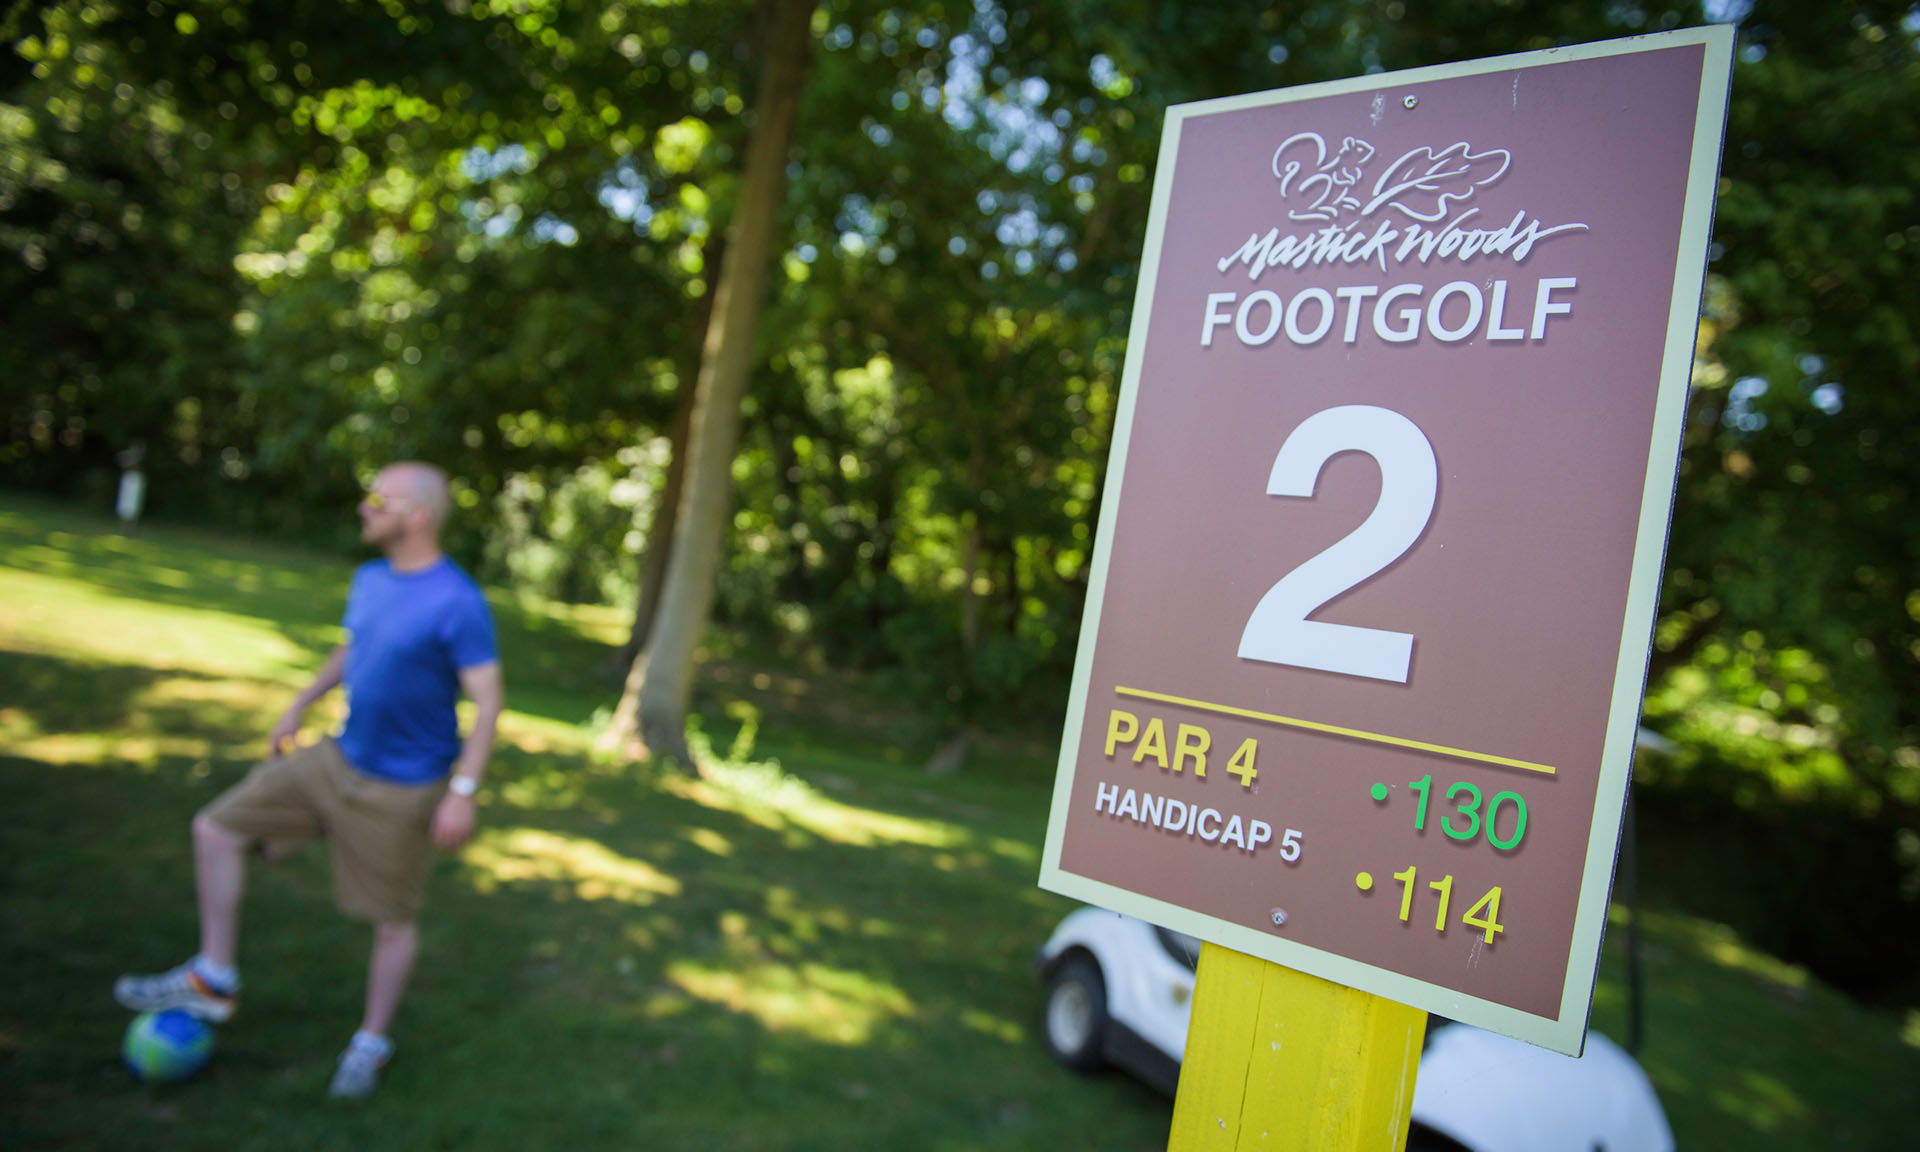 Course #2 at Mastick Woods FootGolf